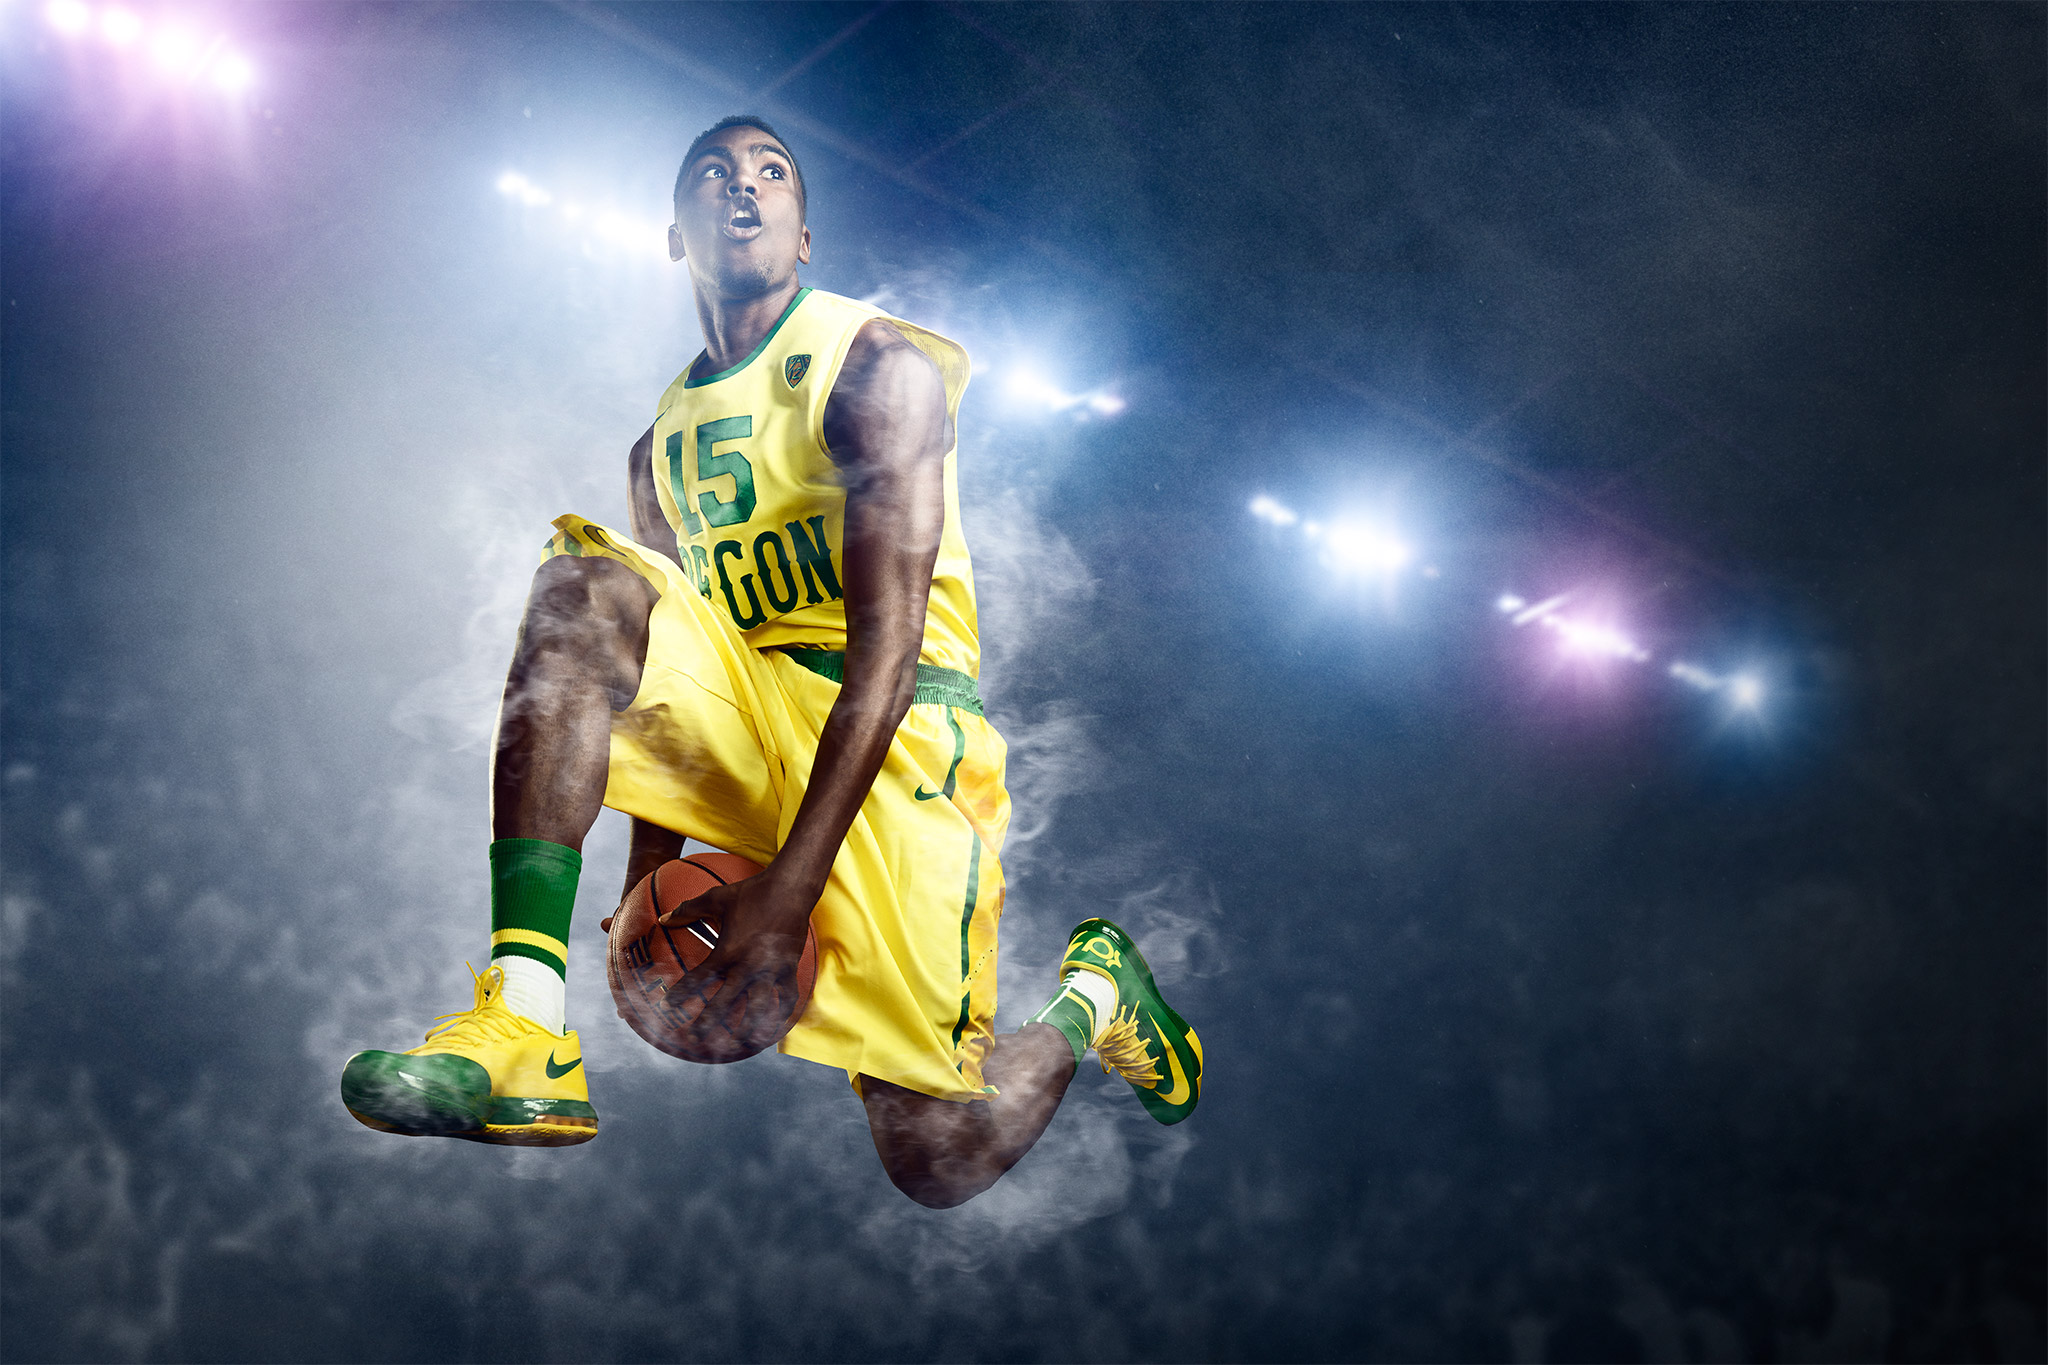 Jalil Abdul-Bassit Basketball U of O | Zach Ancell Photography